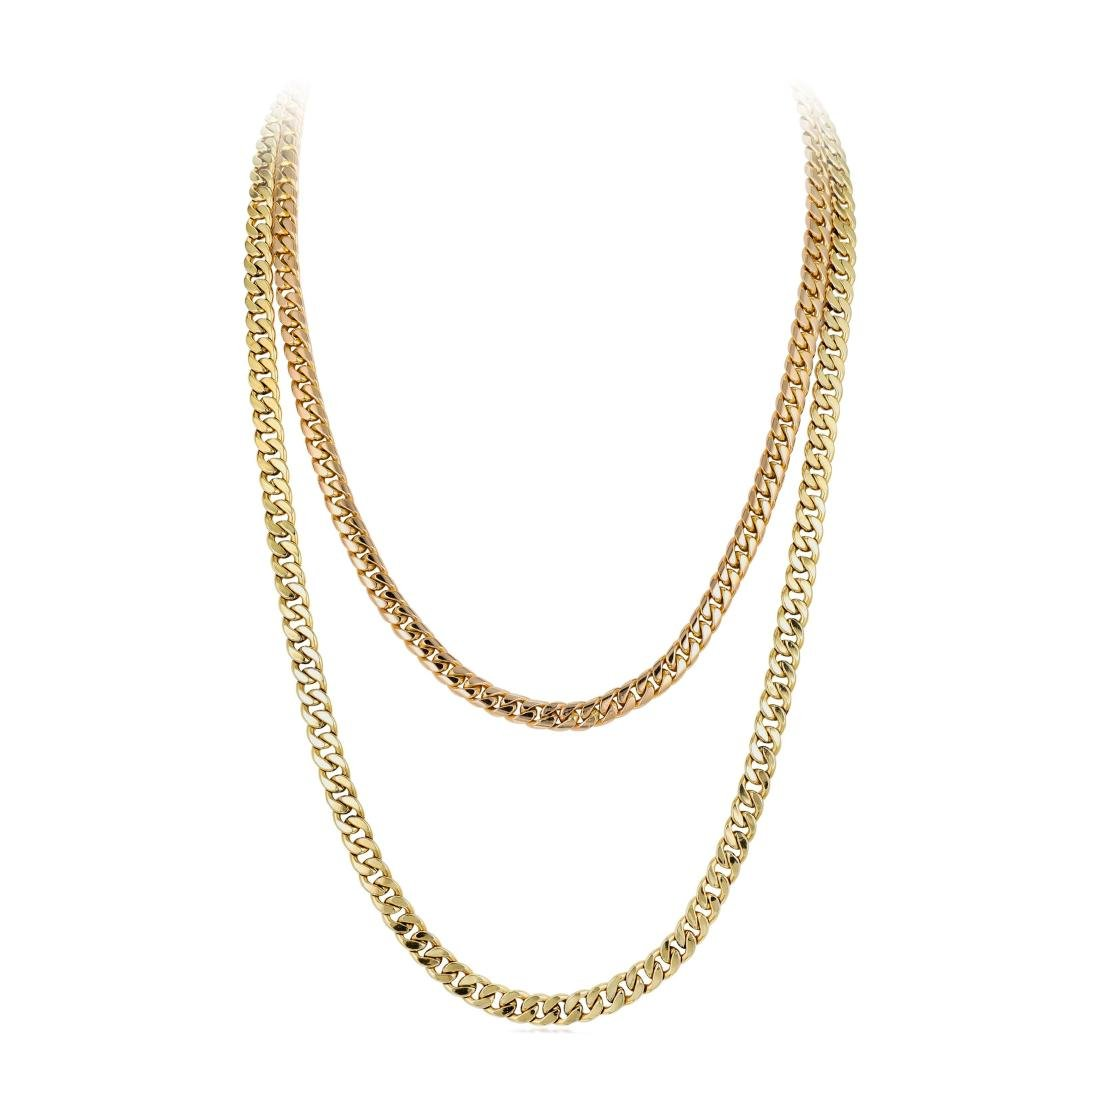 A Group of 14K Gold Chains